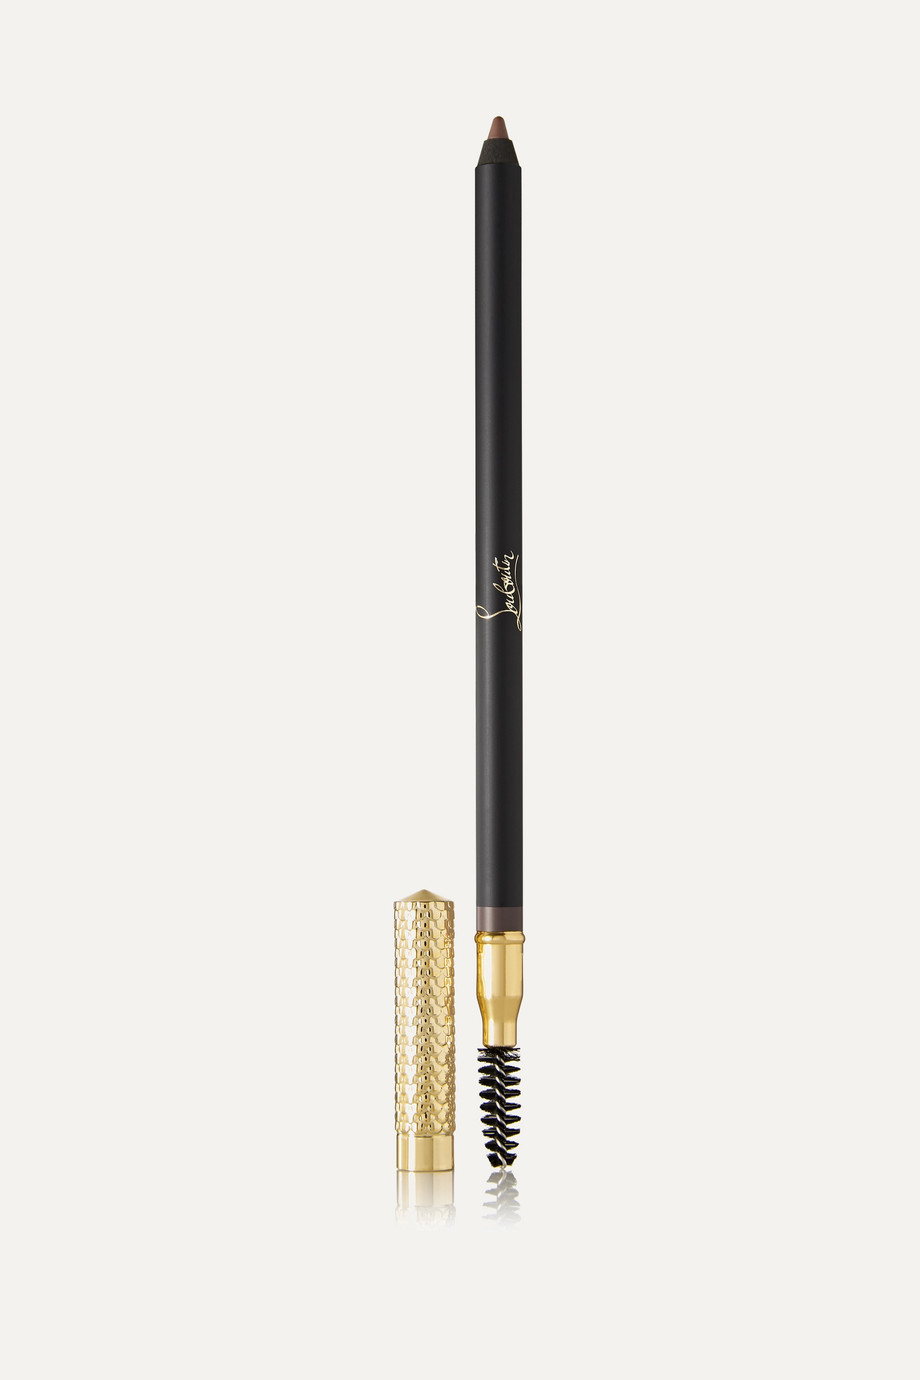 Christian Louboutin Beauty Brow Definer - Taupe